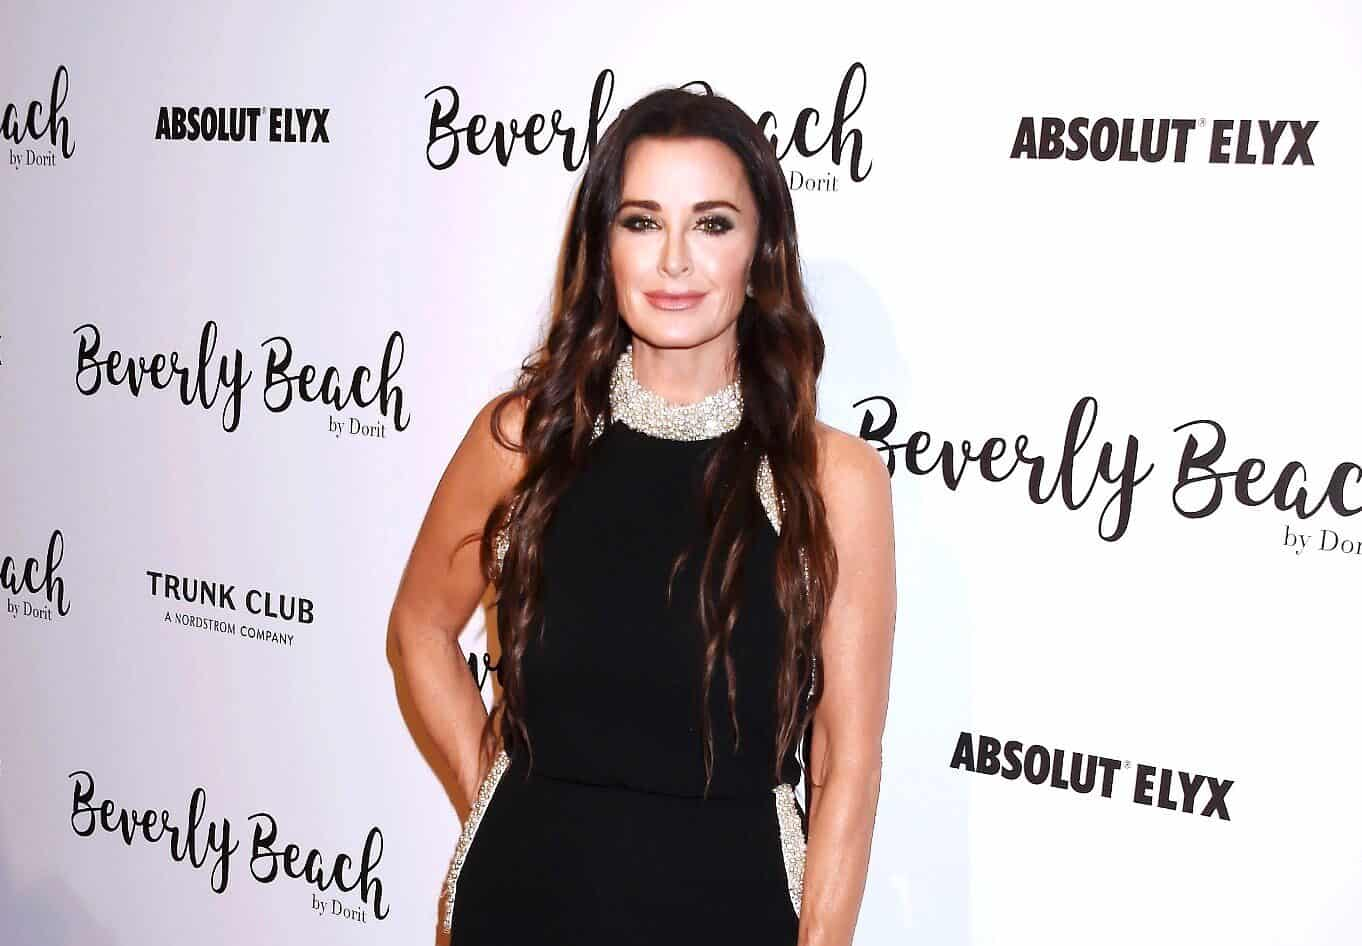 TikTok User Denies Grandma is Wearing Kyle Richards' Stolen Ring After RHOBH Star Alleged the Woman in Diane Keaton's Instagram Photo Had on Her Missing Ring, See How Kyle Responded